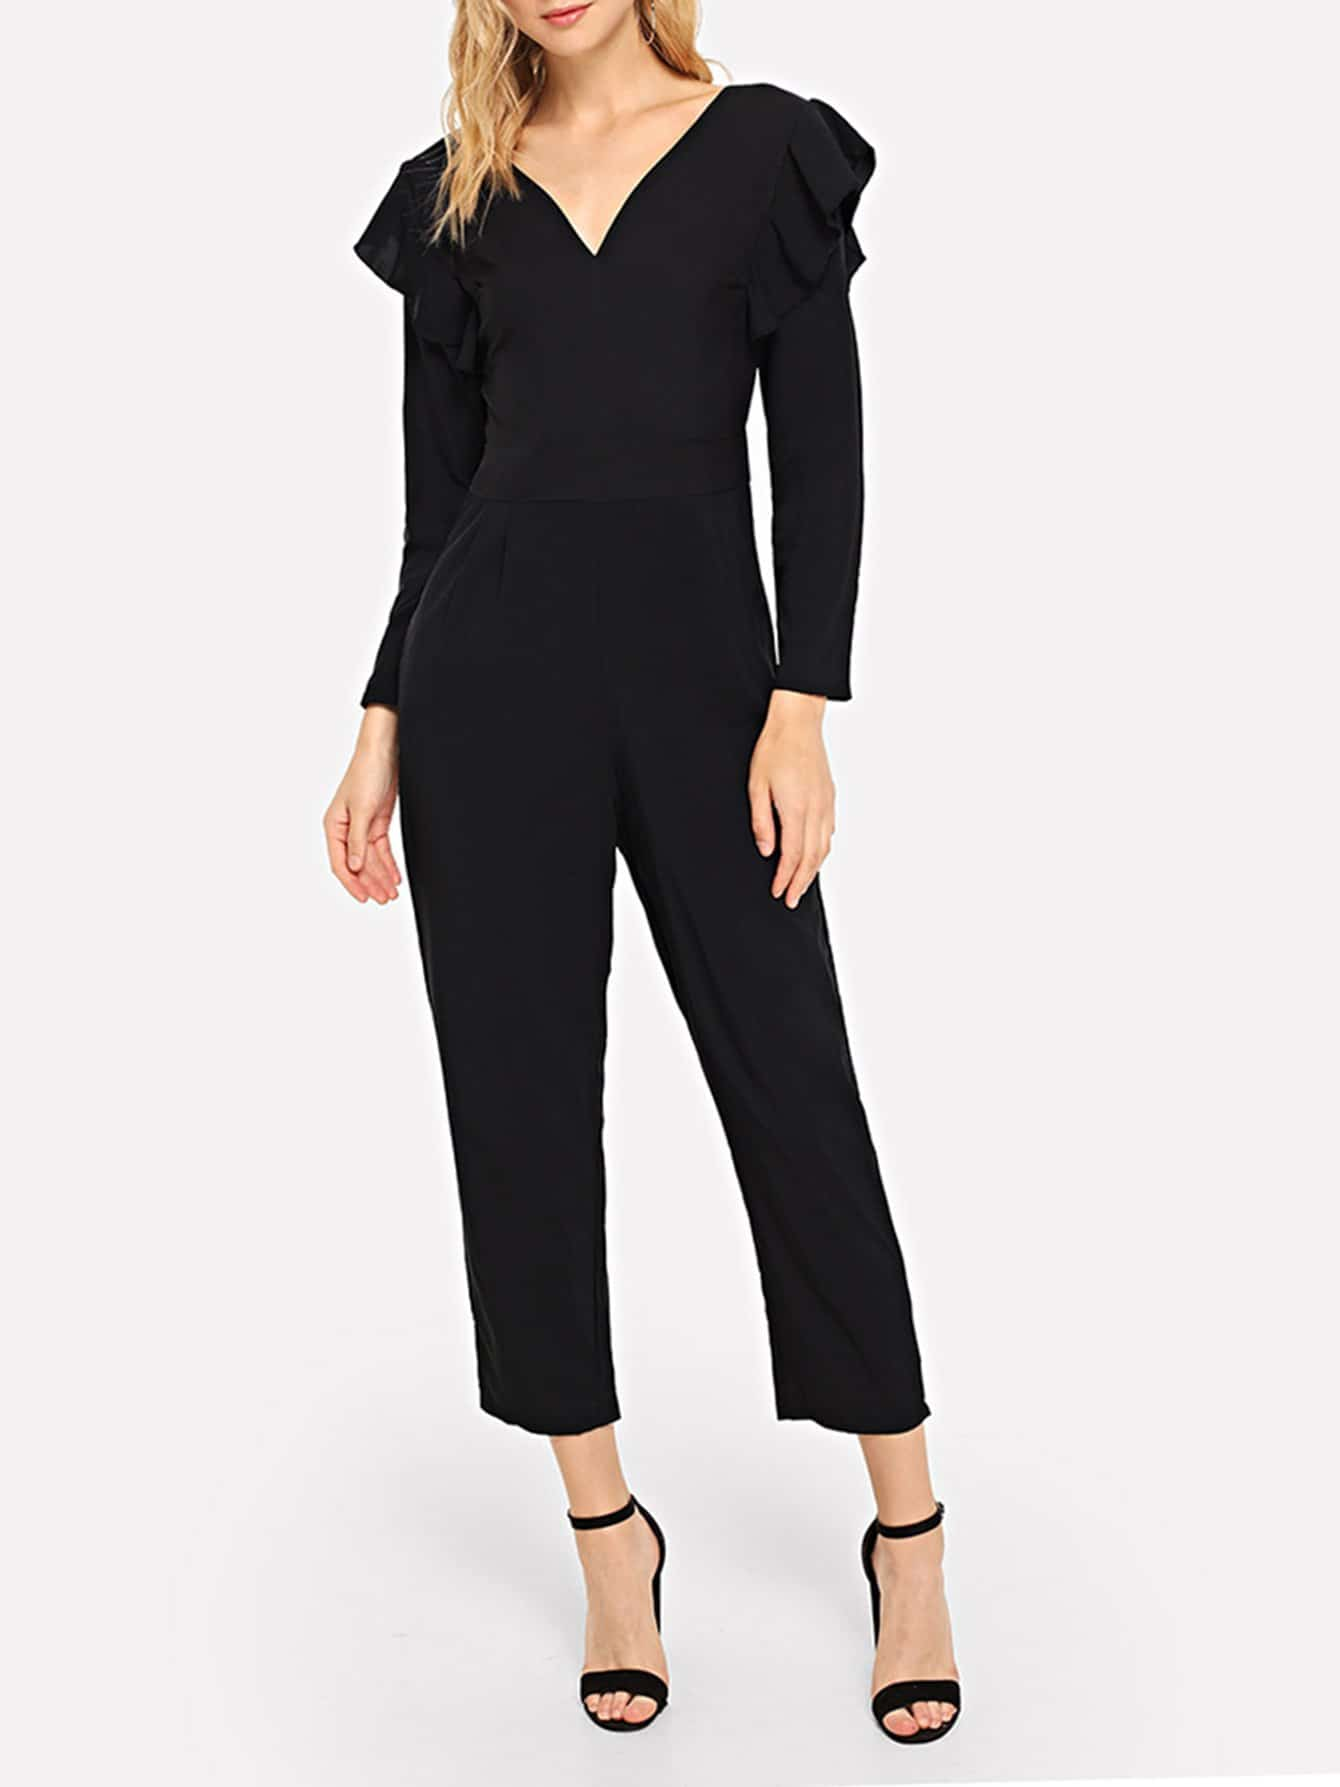 Ruffle Trim V Neck Solid Jumpsuit choker neck embroidered ruffle trim jumpsuit